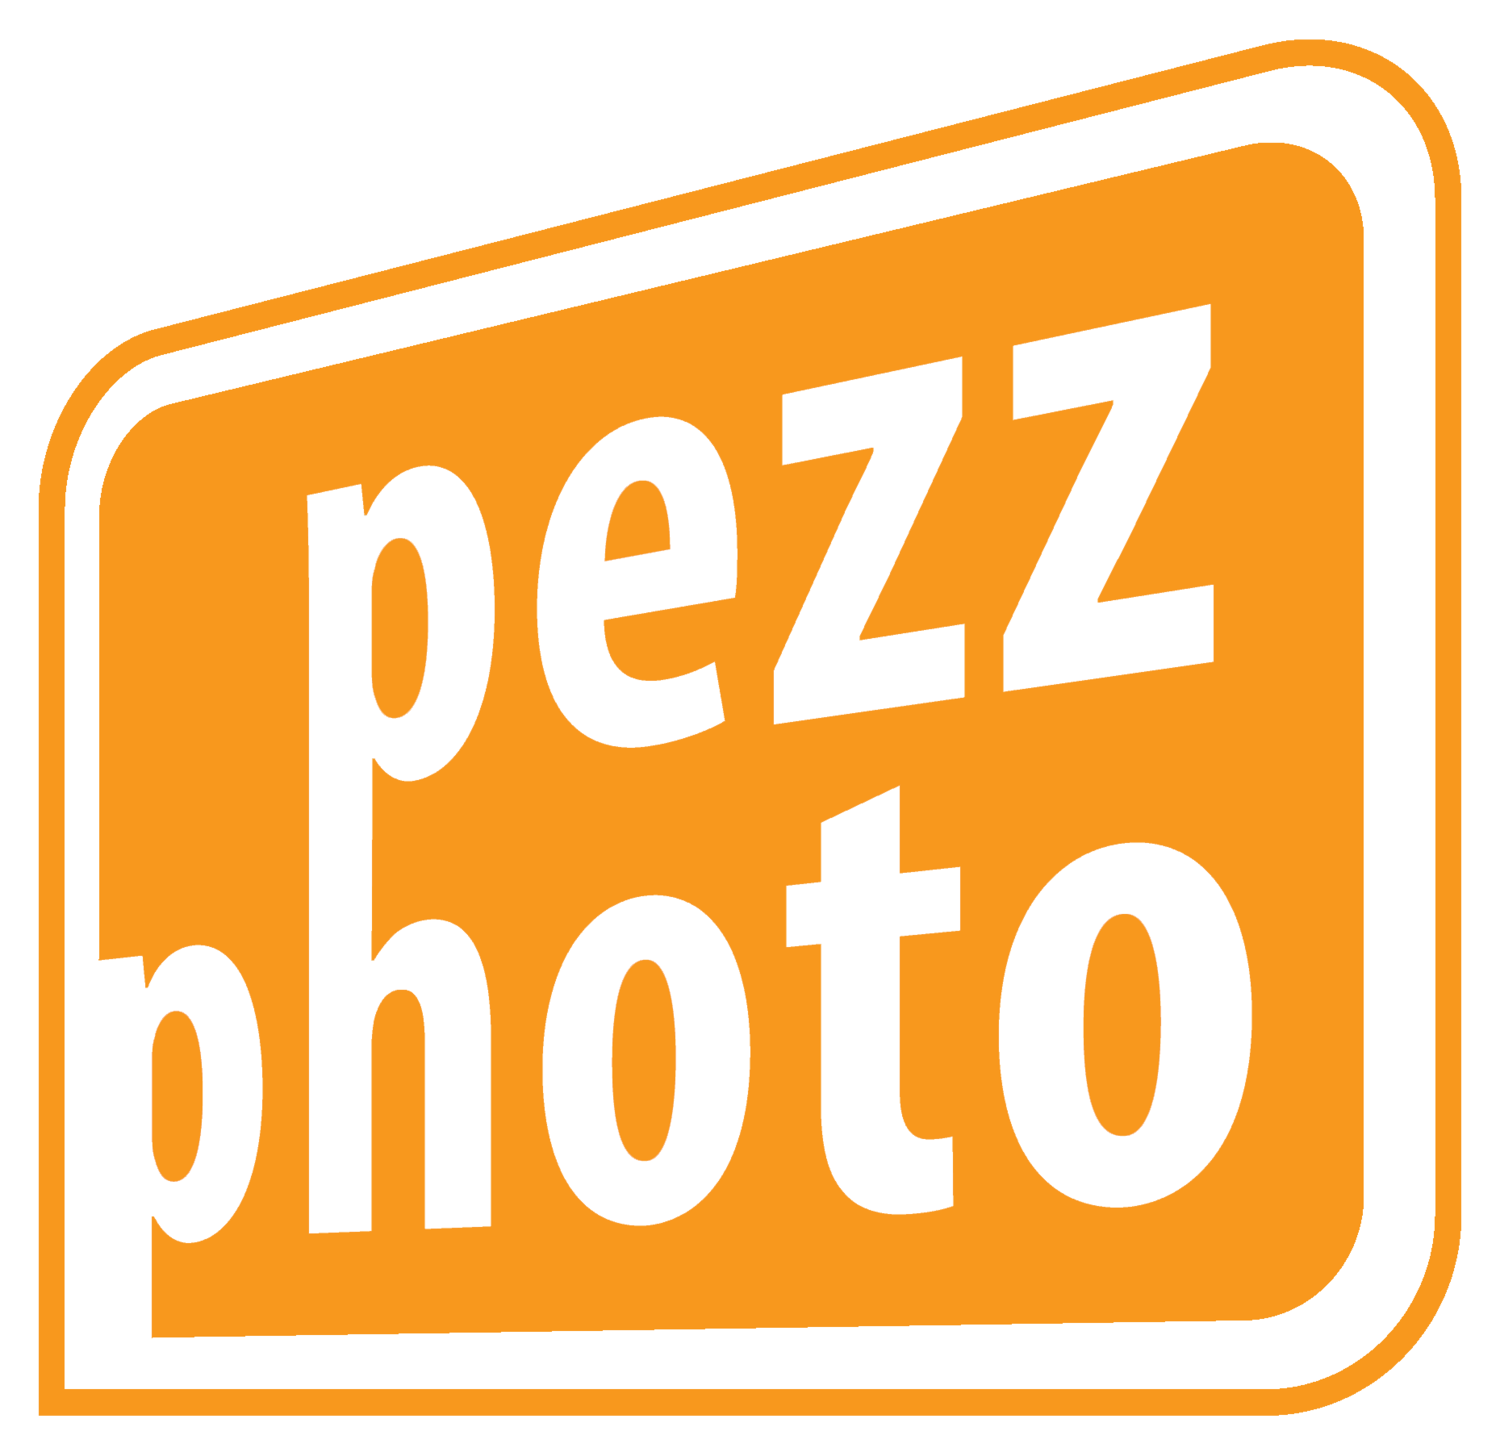 Amy Pezzicara / Pezz Photo